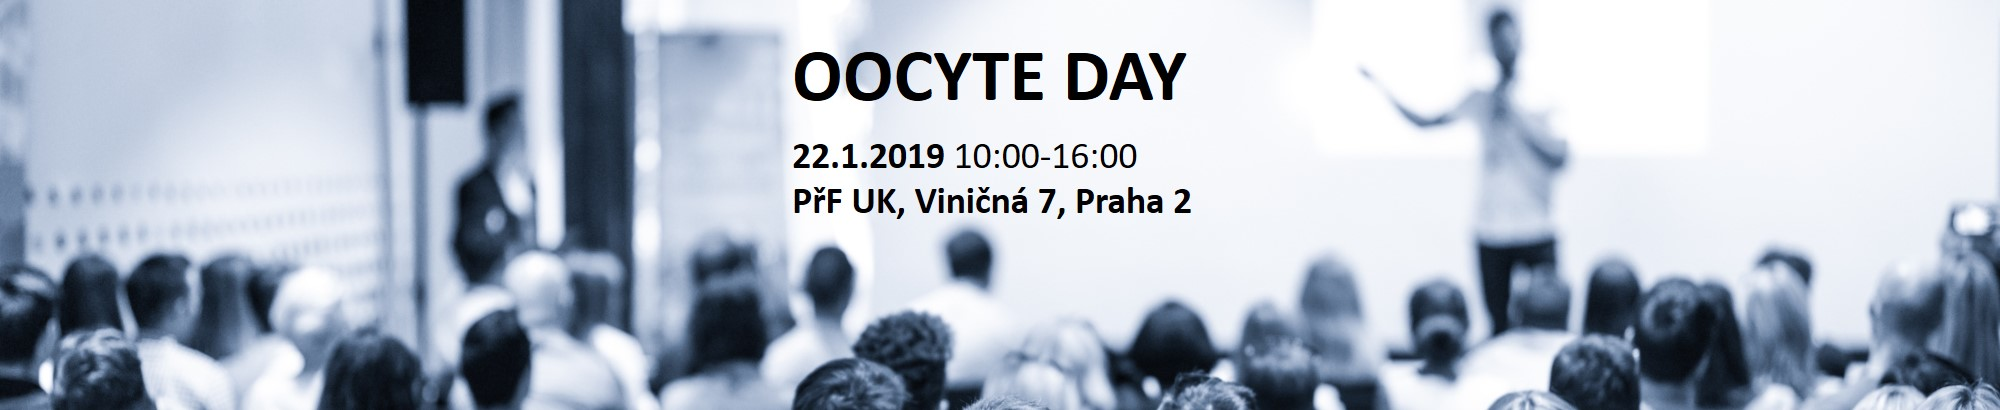 Oocyte Day 2019